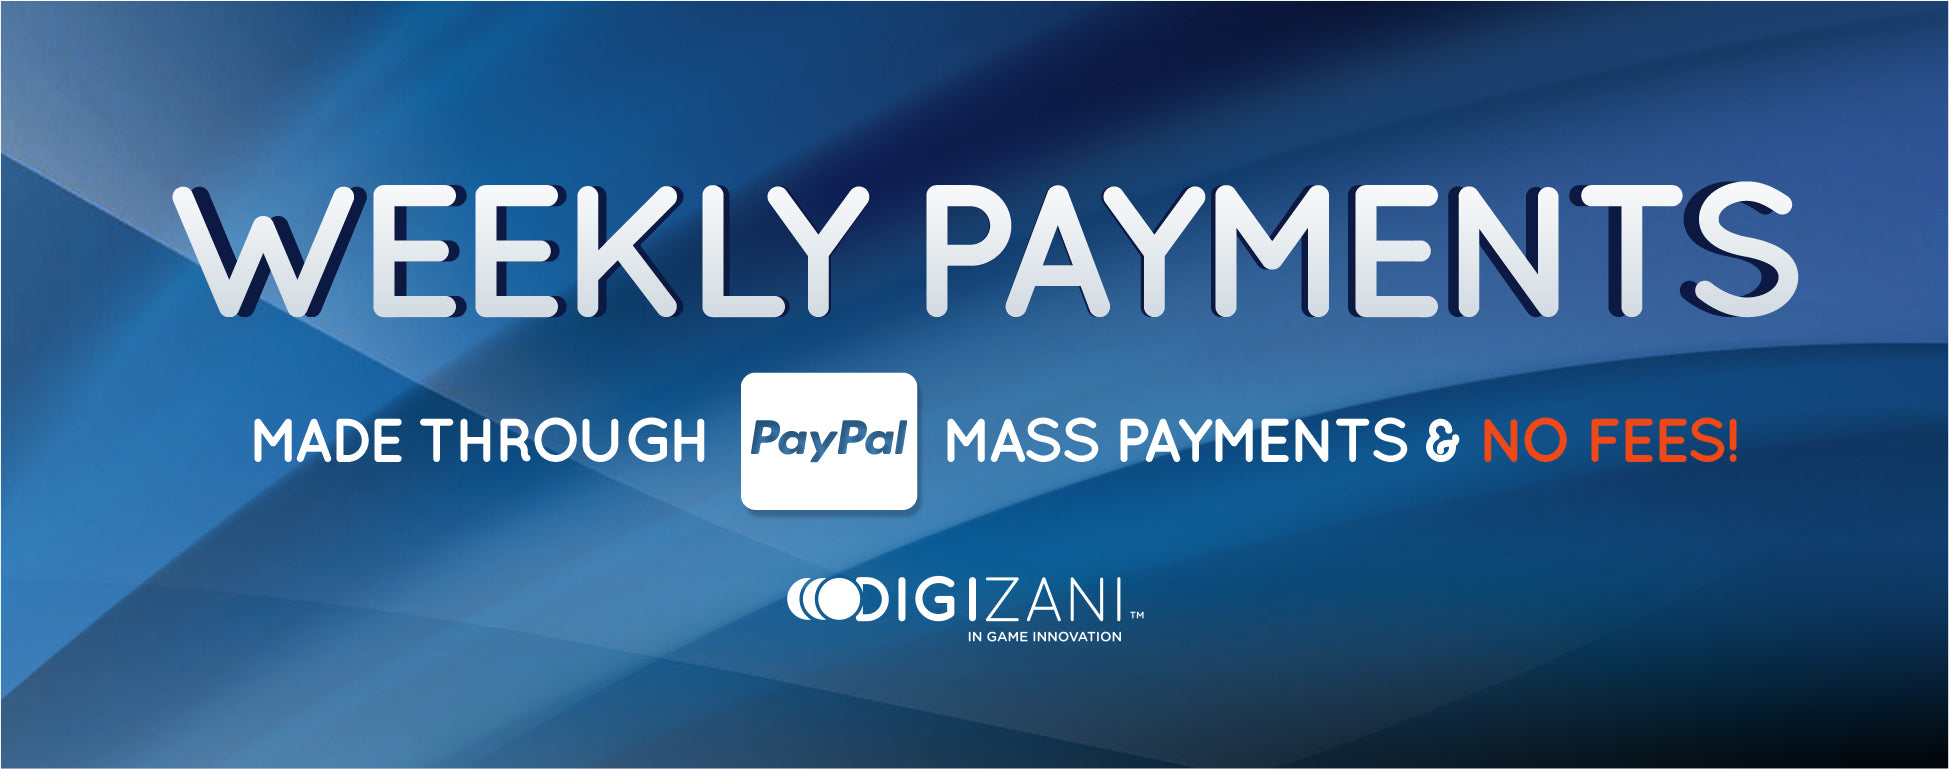 Weekly payments